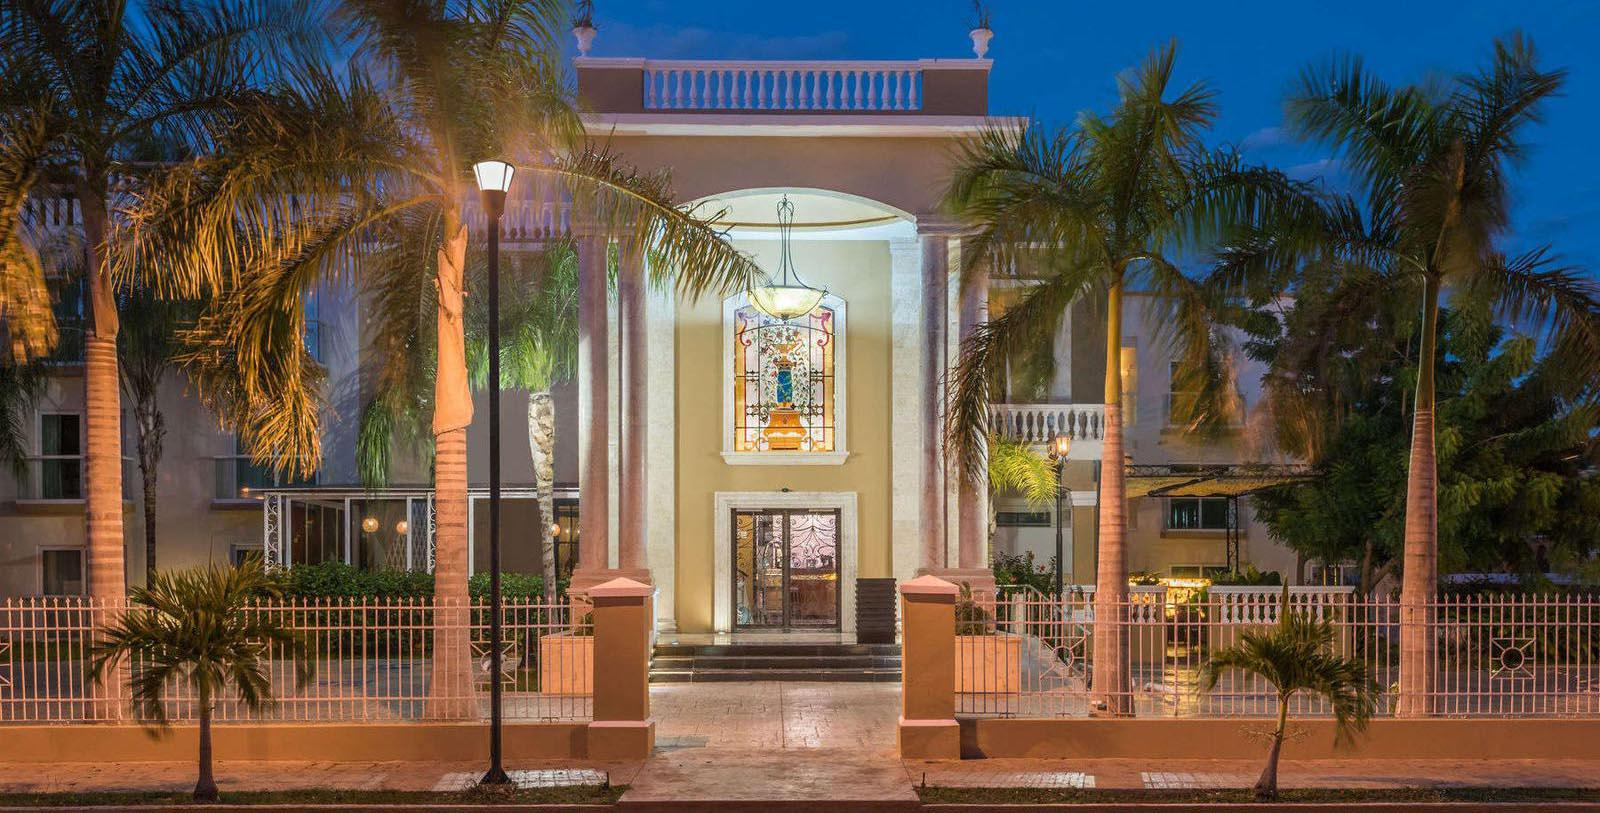 Image of Hotel Front Entrance at Wyndham Merida, 1912, Member of Historic Hotels Worldwide, in Merida, Yucatan, Mexico, Explore